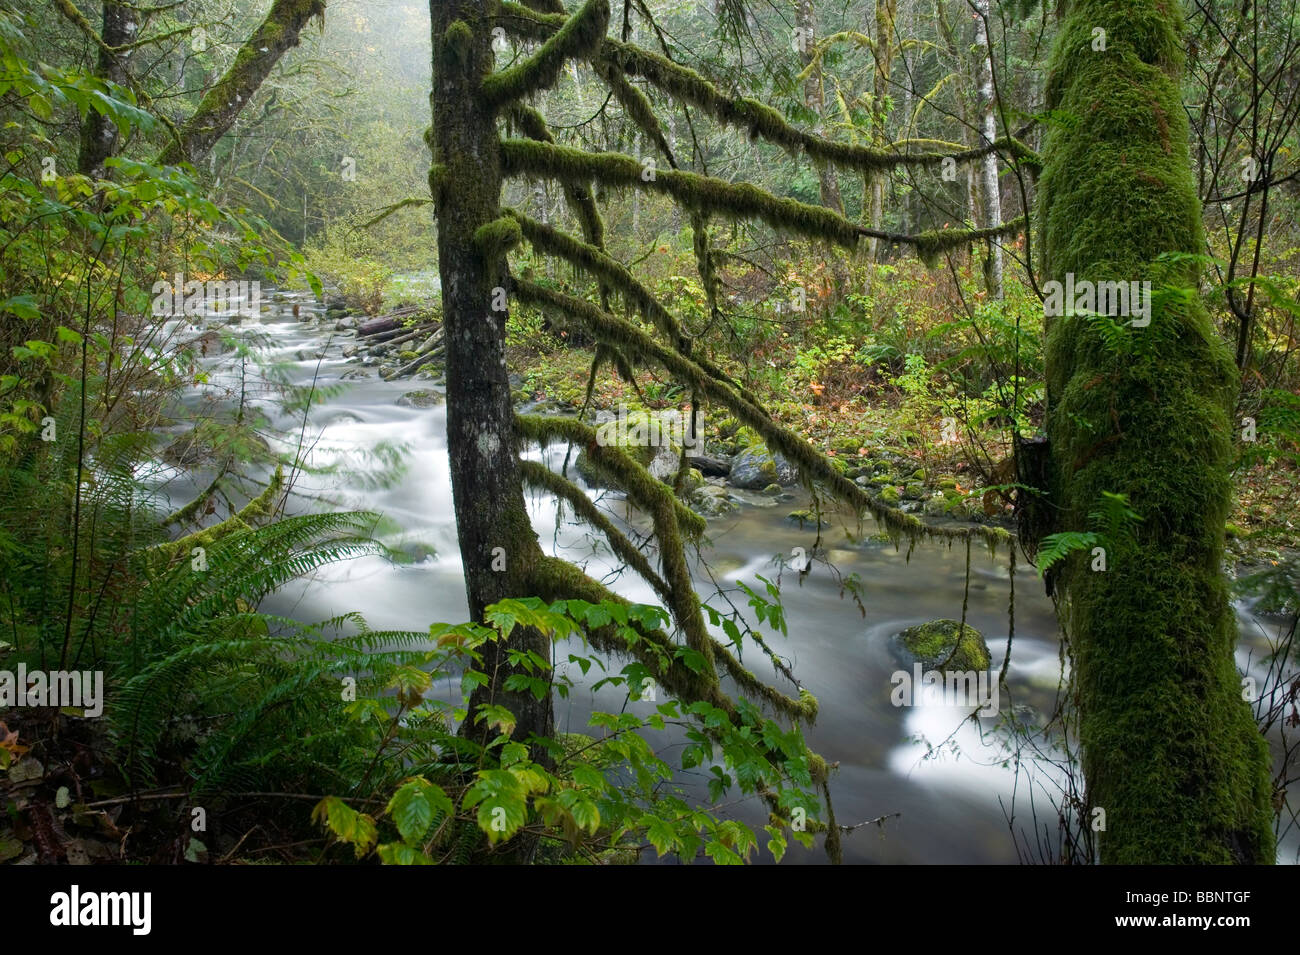 moss covered trees and Wallace River, Wallace Falls State Park, Washington - Stock Image